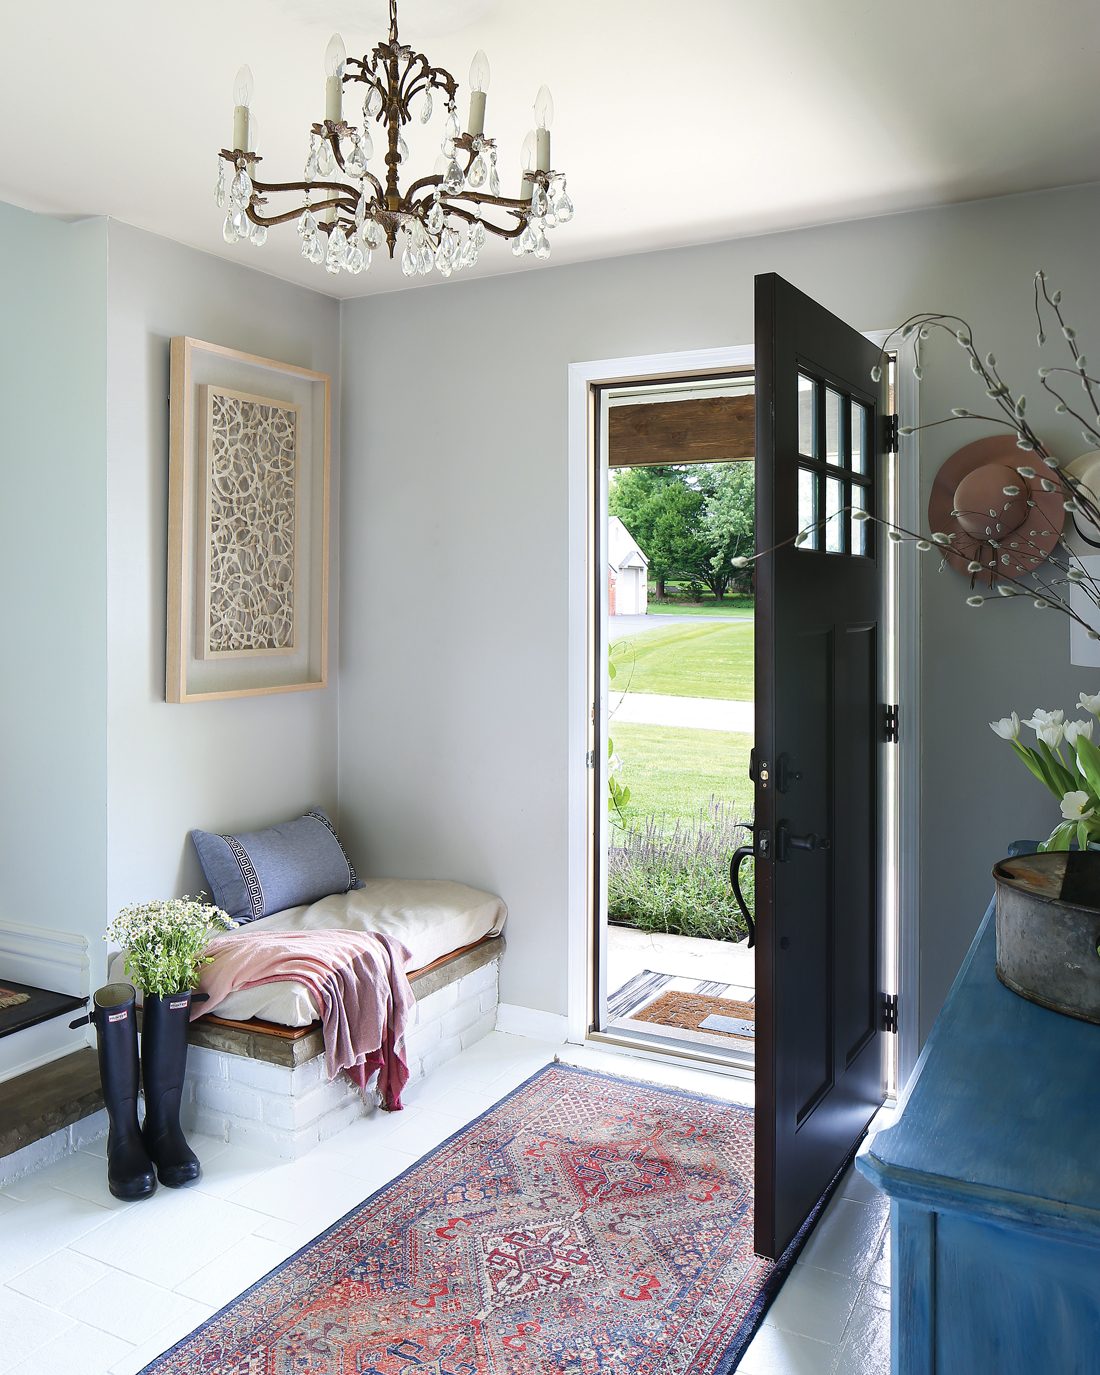 An entry way with a welcoming open door and a vintage Persian runner with an antique chandelier hanging from the ceiling.